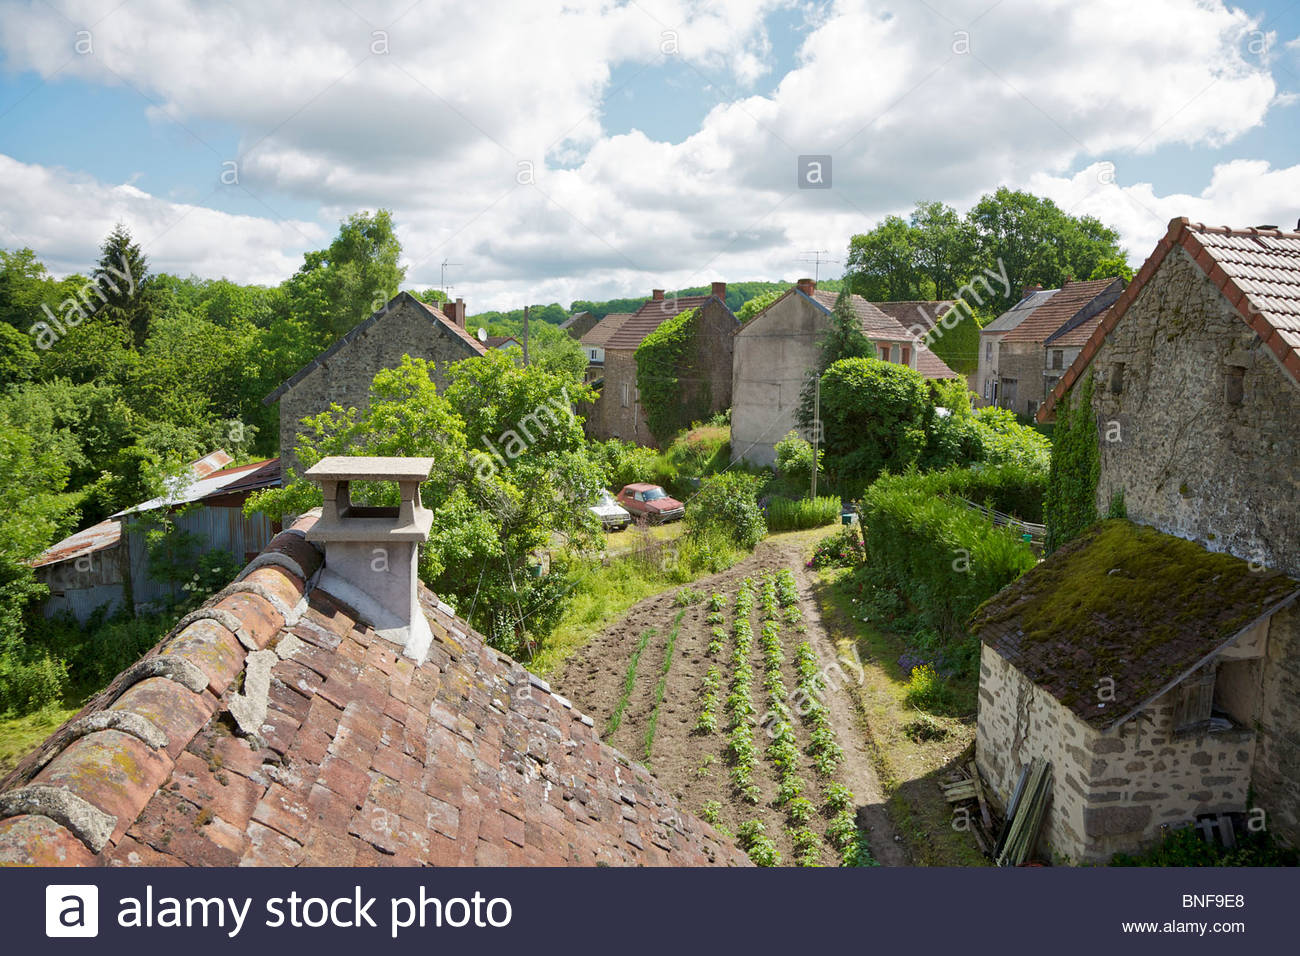 View from the rooftop of a small farmhouse in a rural French village. Les Verrines, La Creuse, Limousin, France. - Stock Image